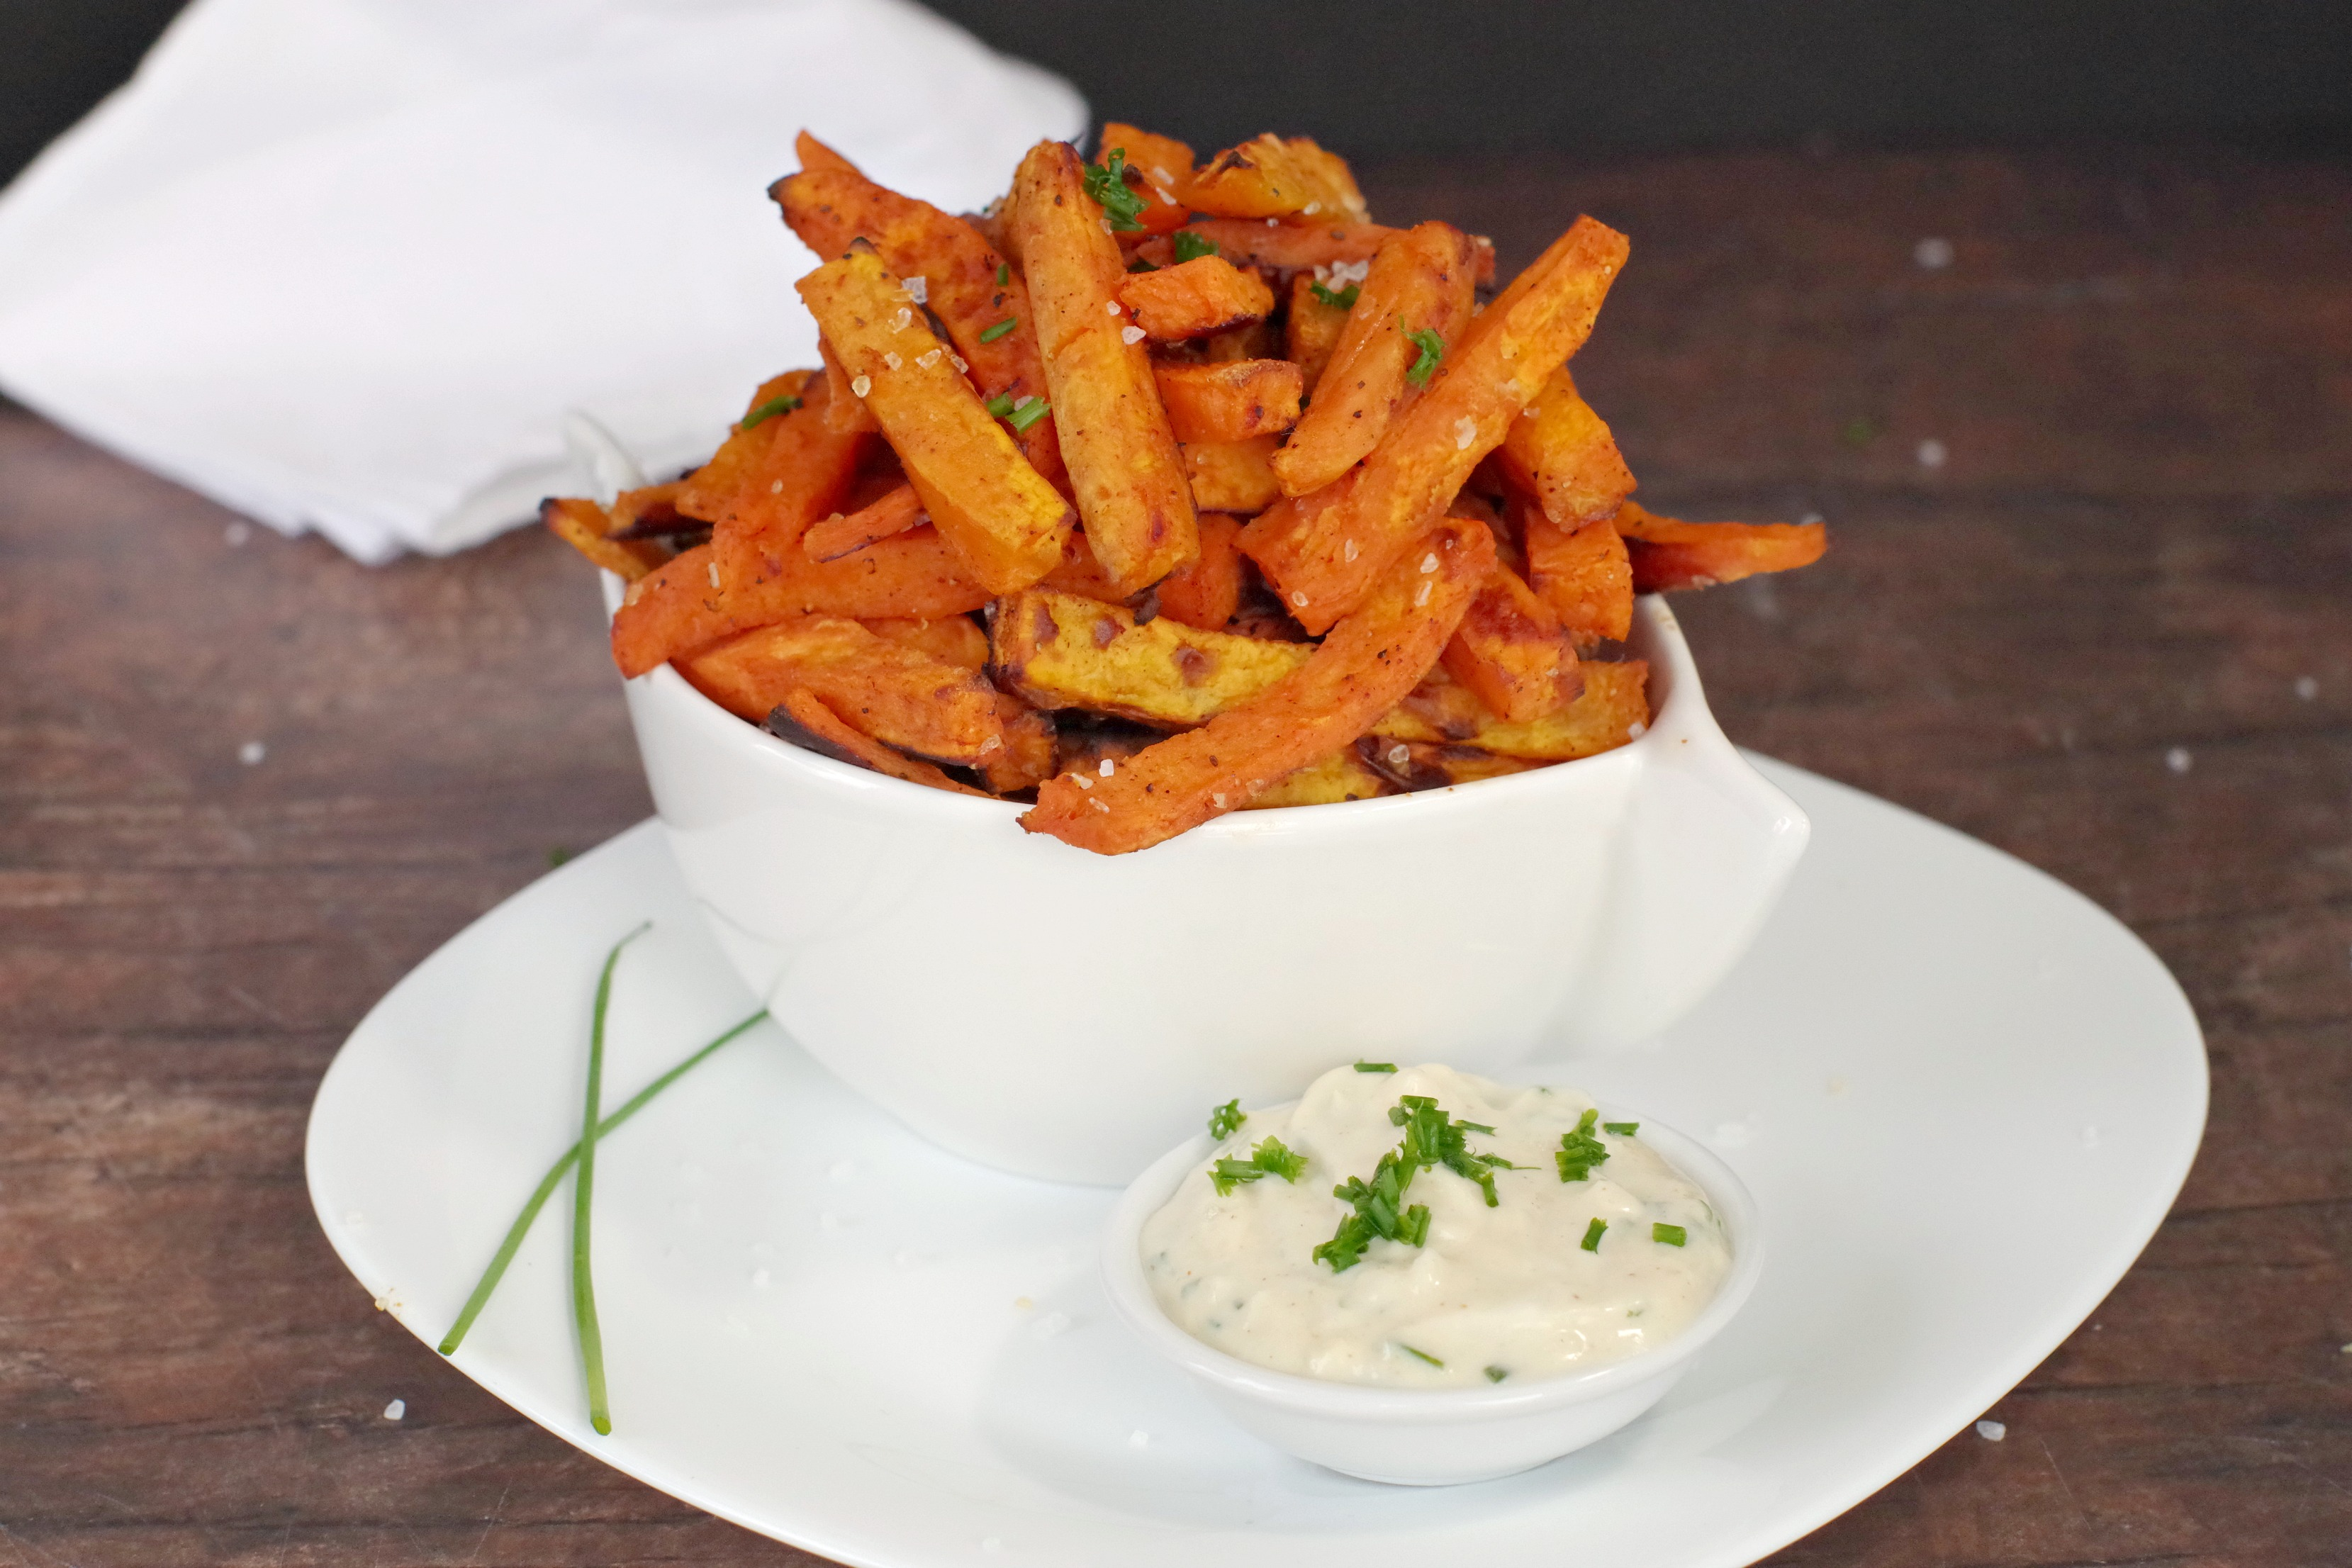 Sweet potato fries and dip in white plate on white bowl